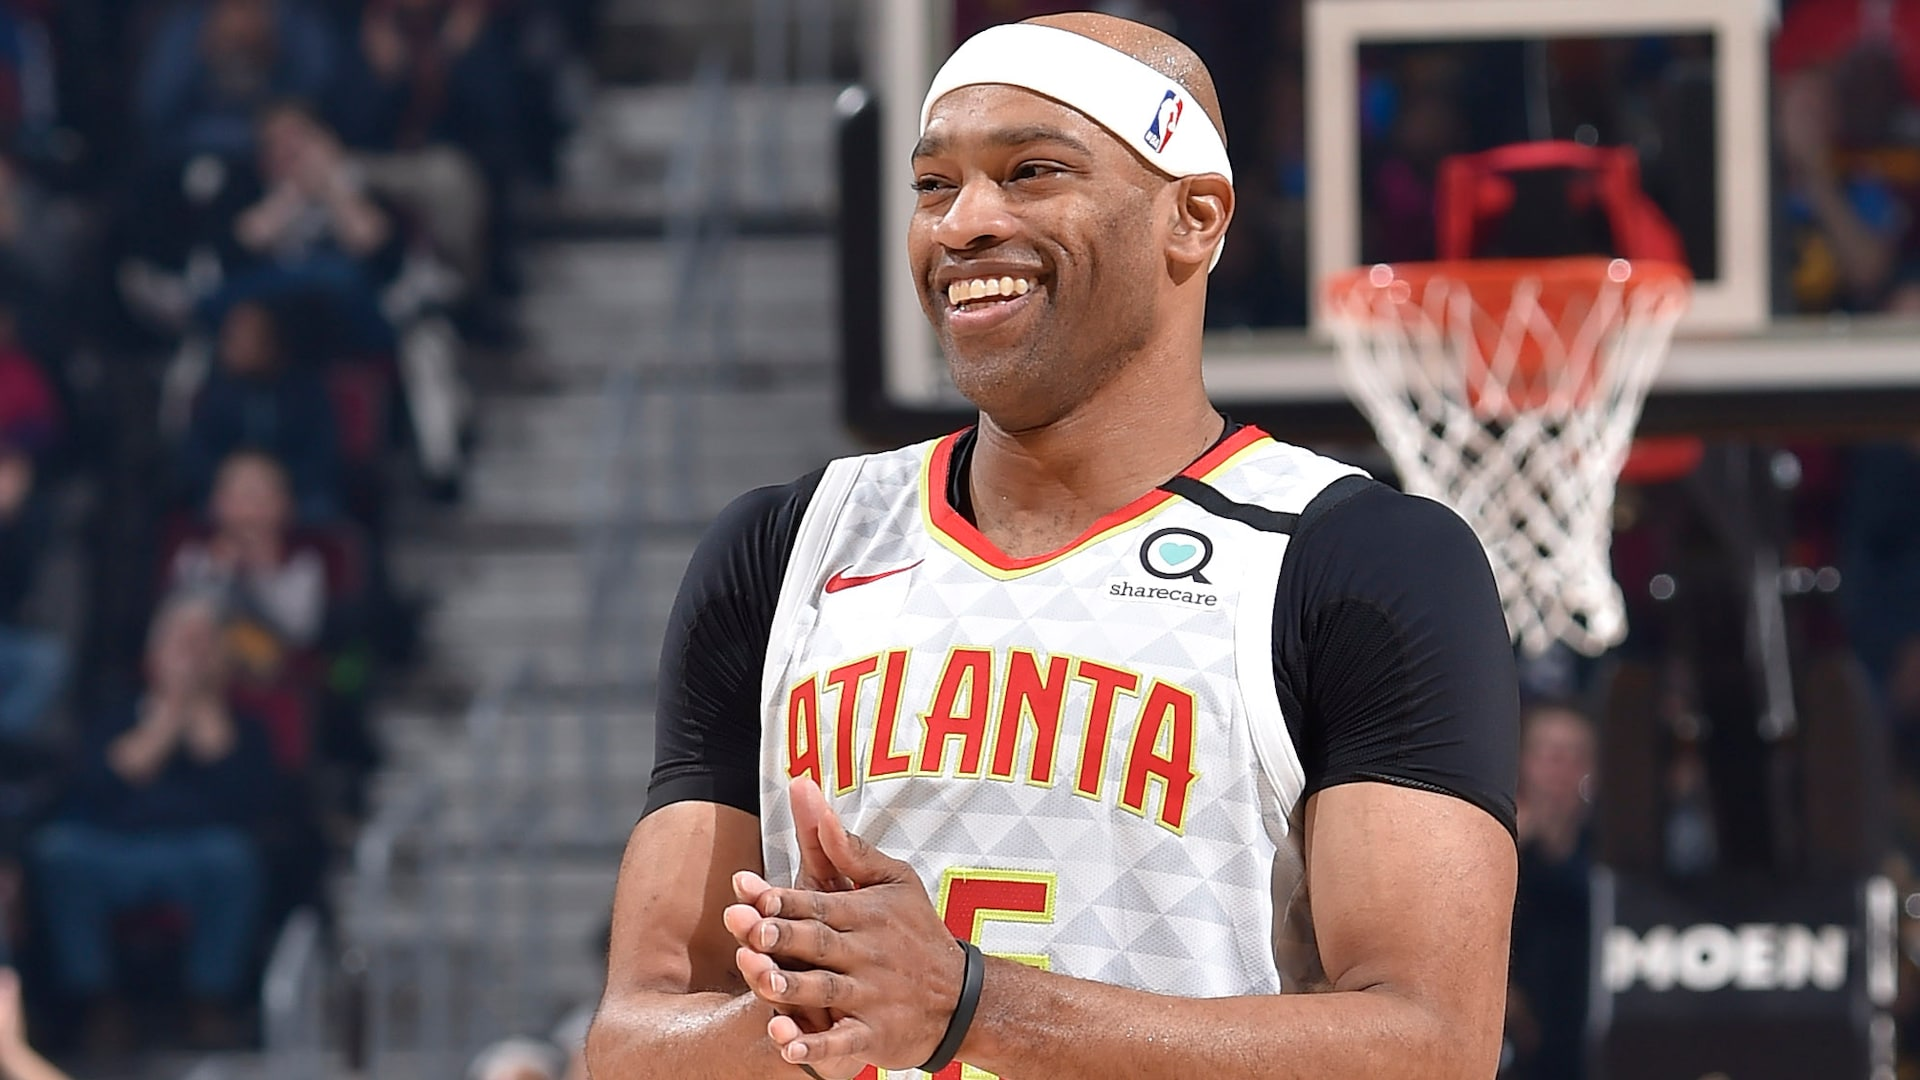 Vince Carter wins 2019-20 NBA Sportsmanship Award